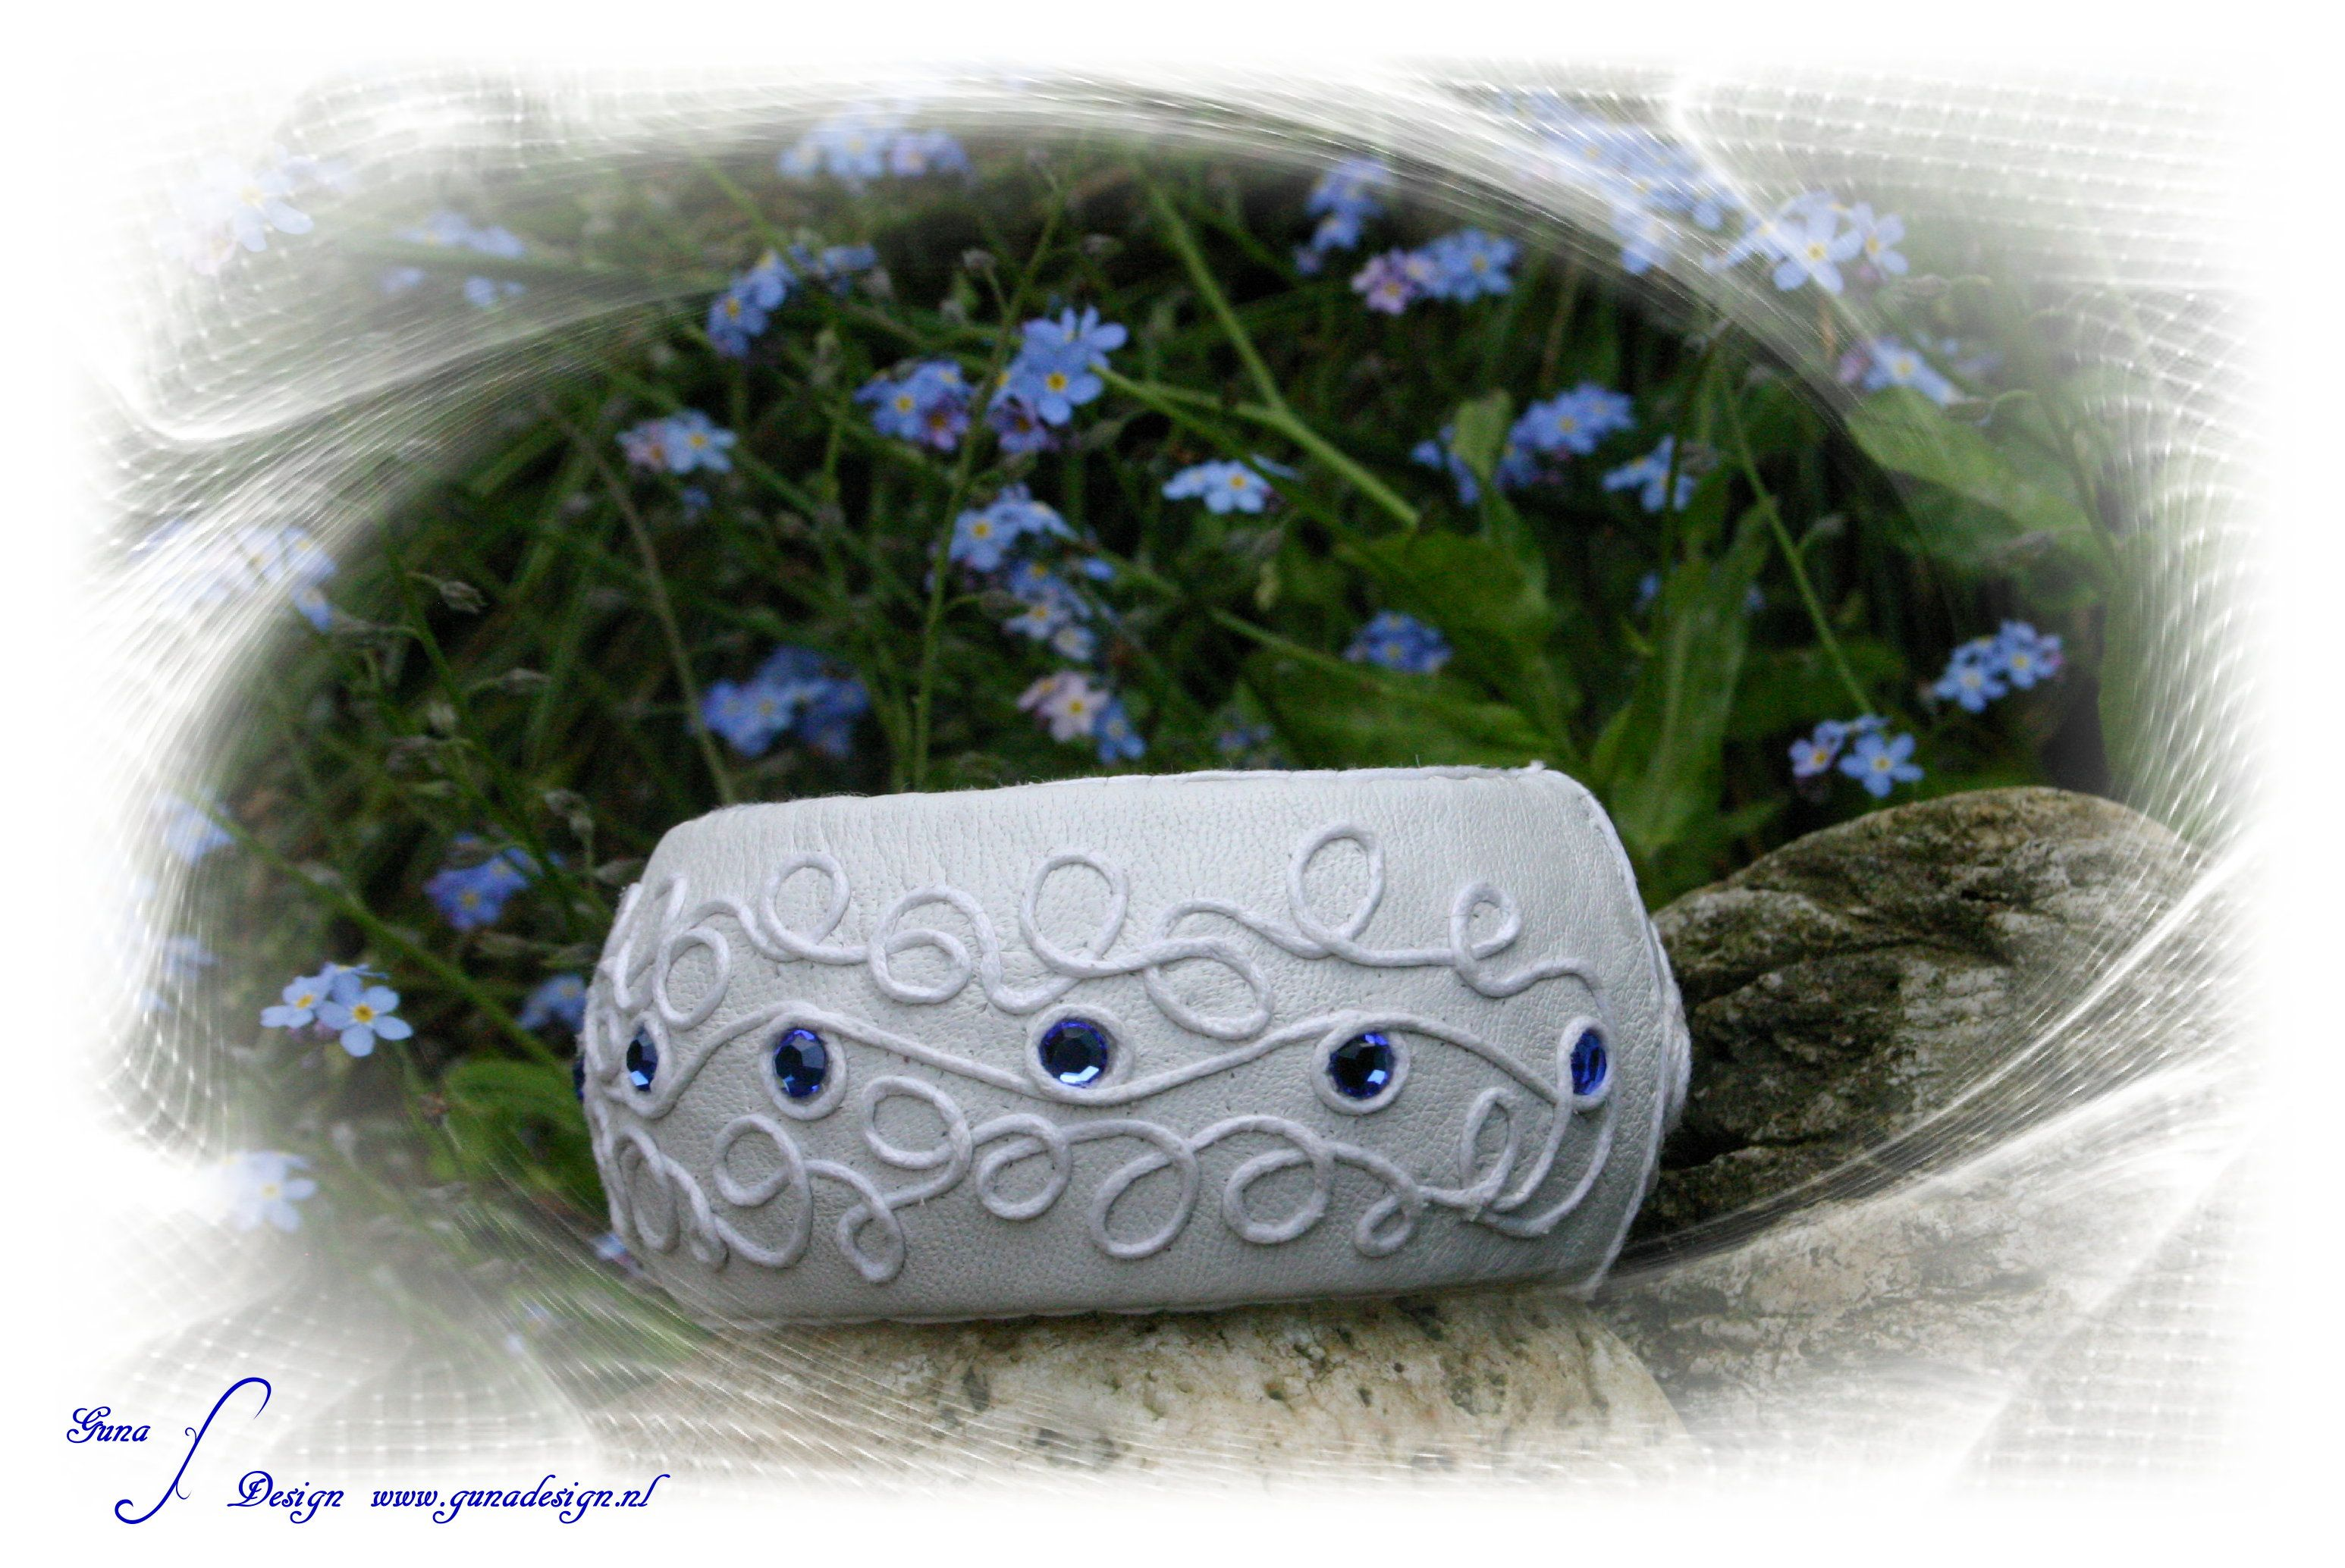 Something blue  Bracelet cuff made from Preciosa crystals and leather.